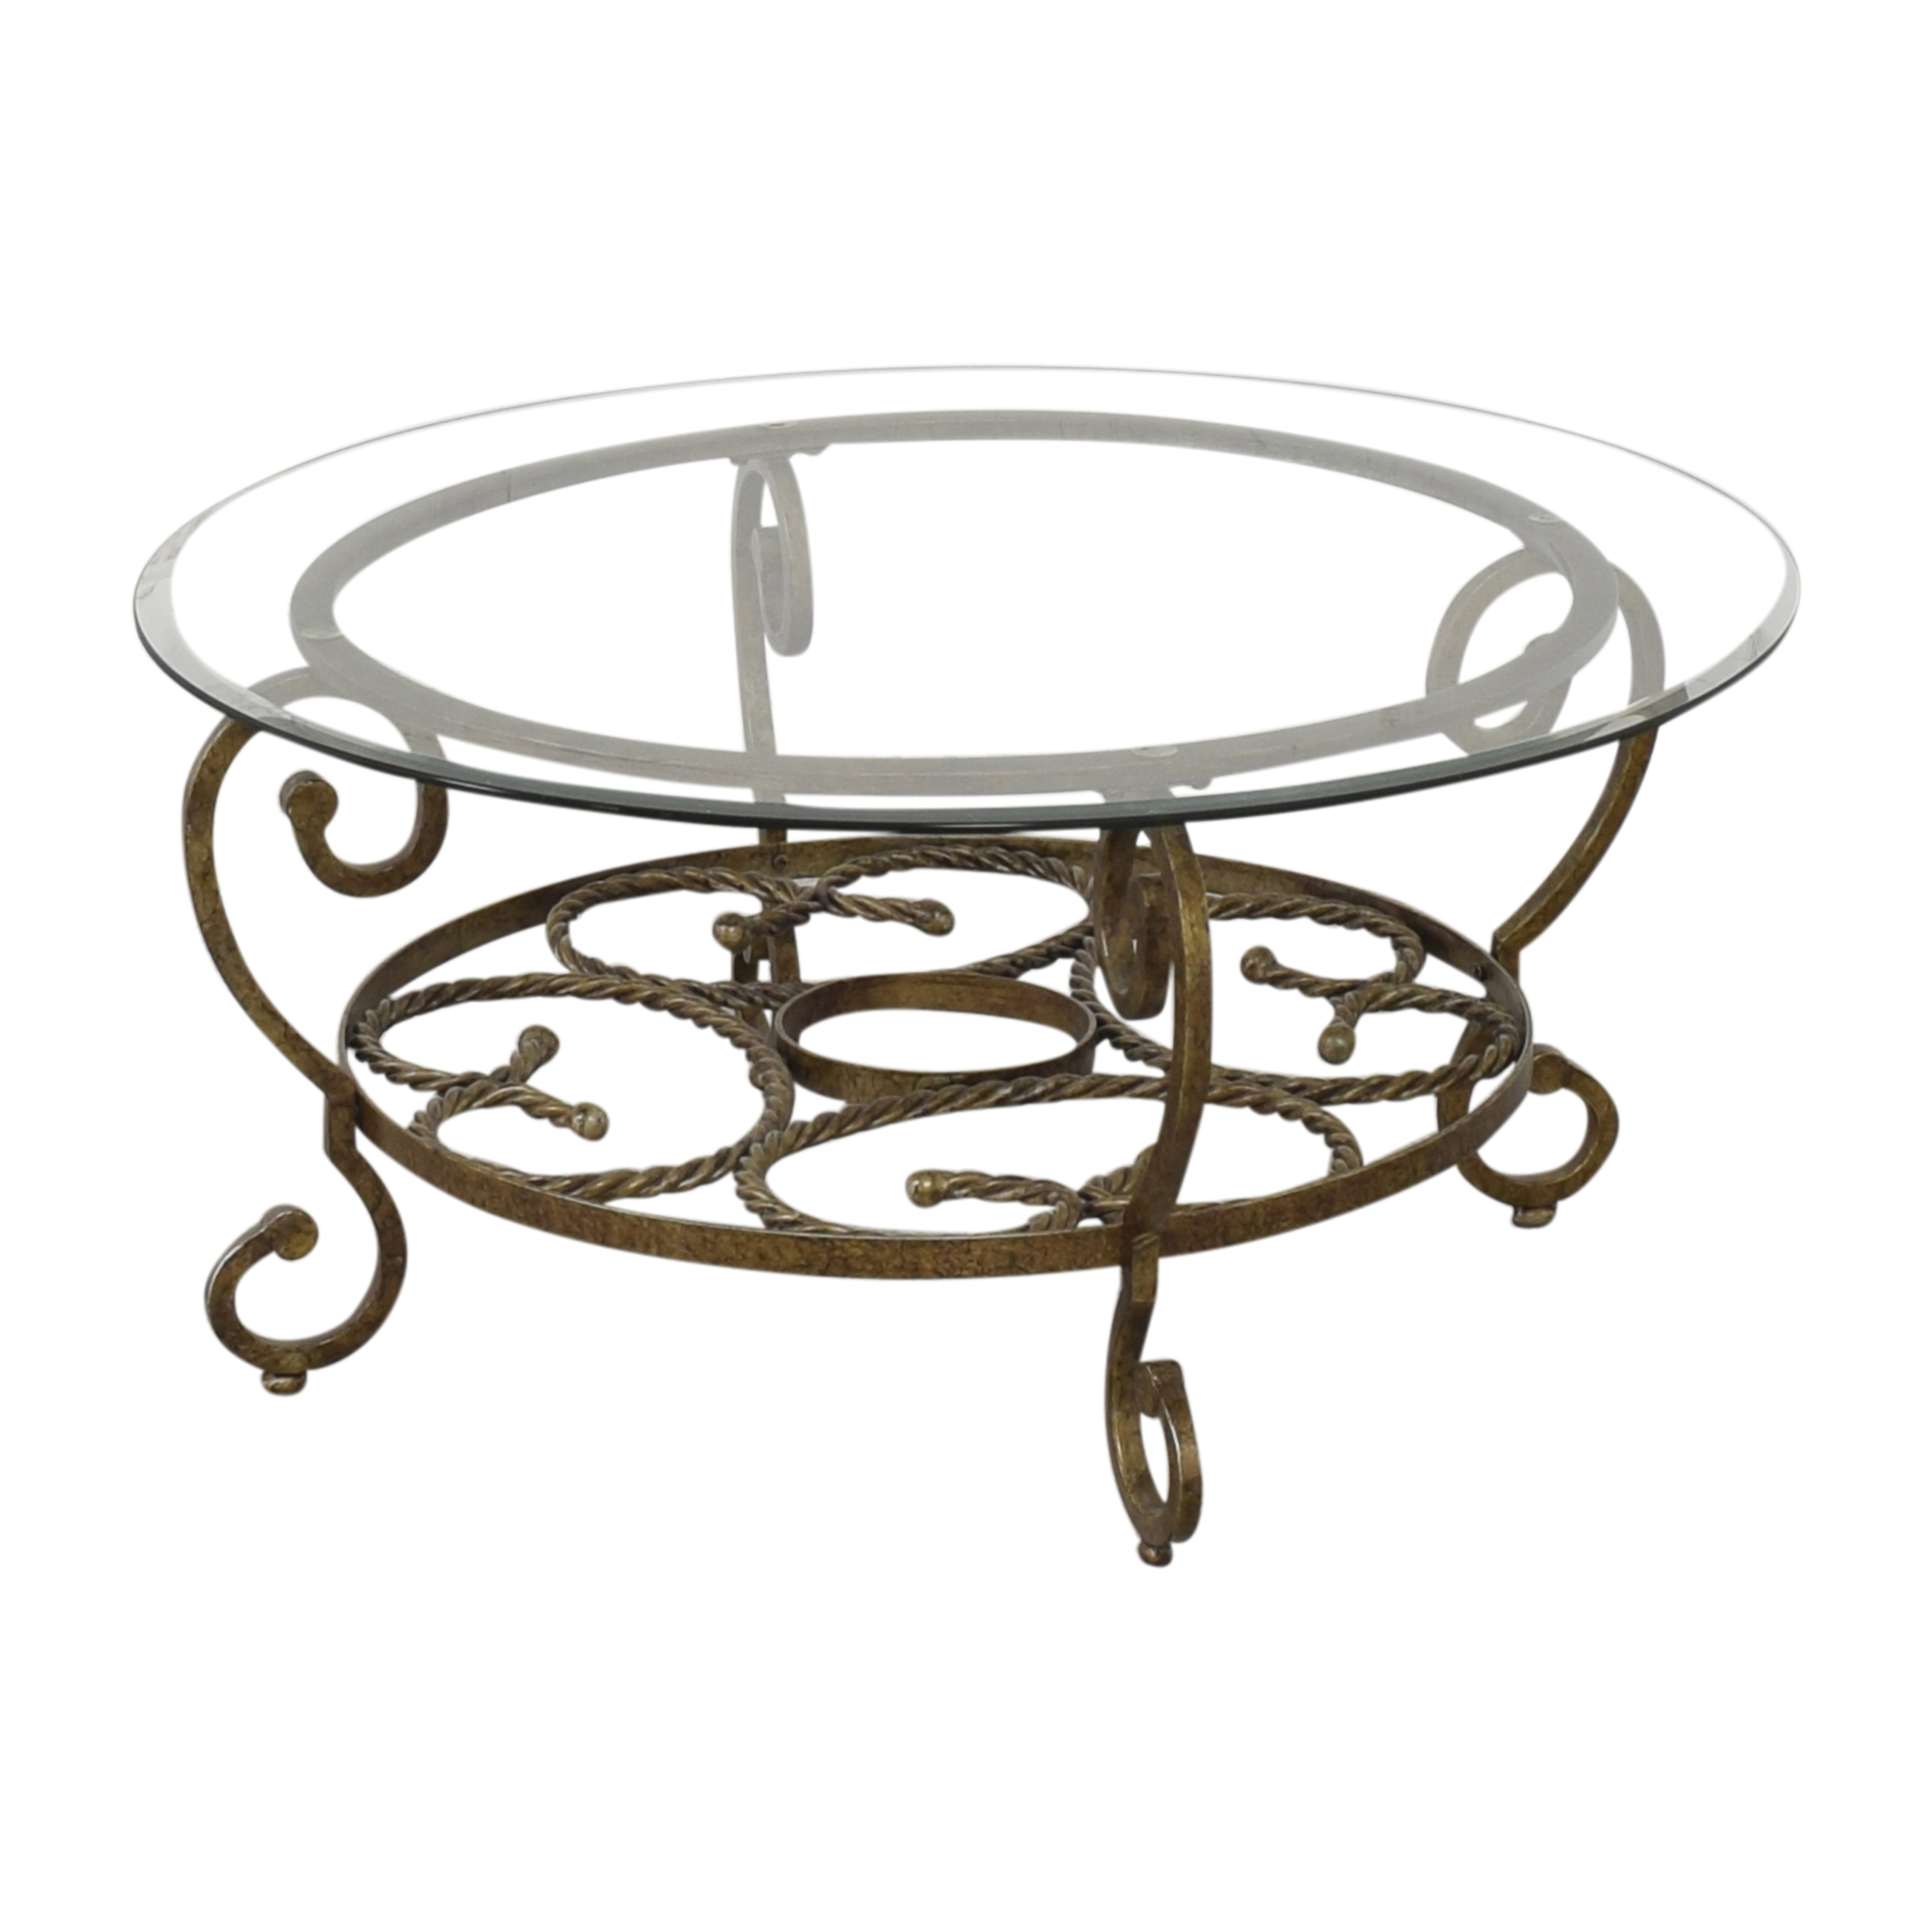 Raymour & Flanigan Raymour & Flanigan Round Coffee Table second hand